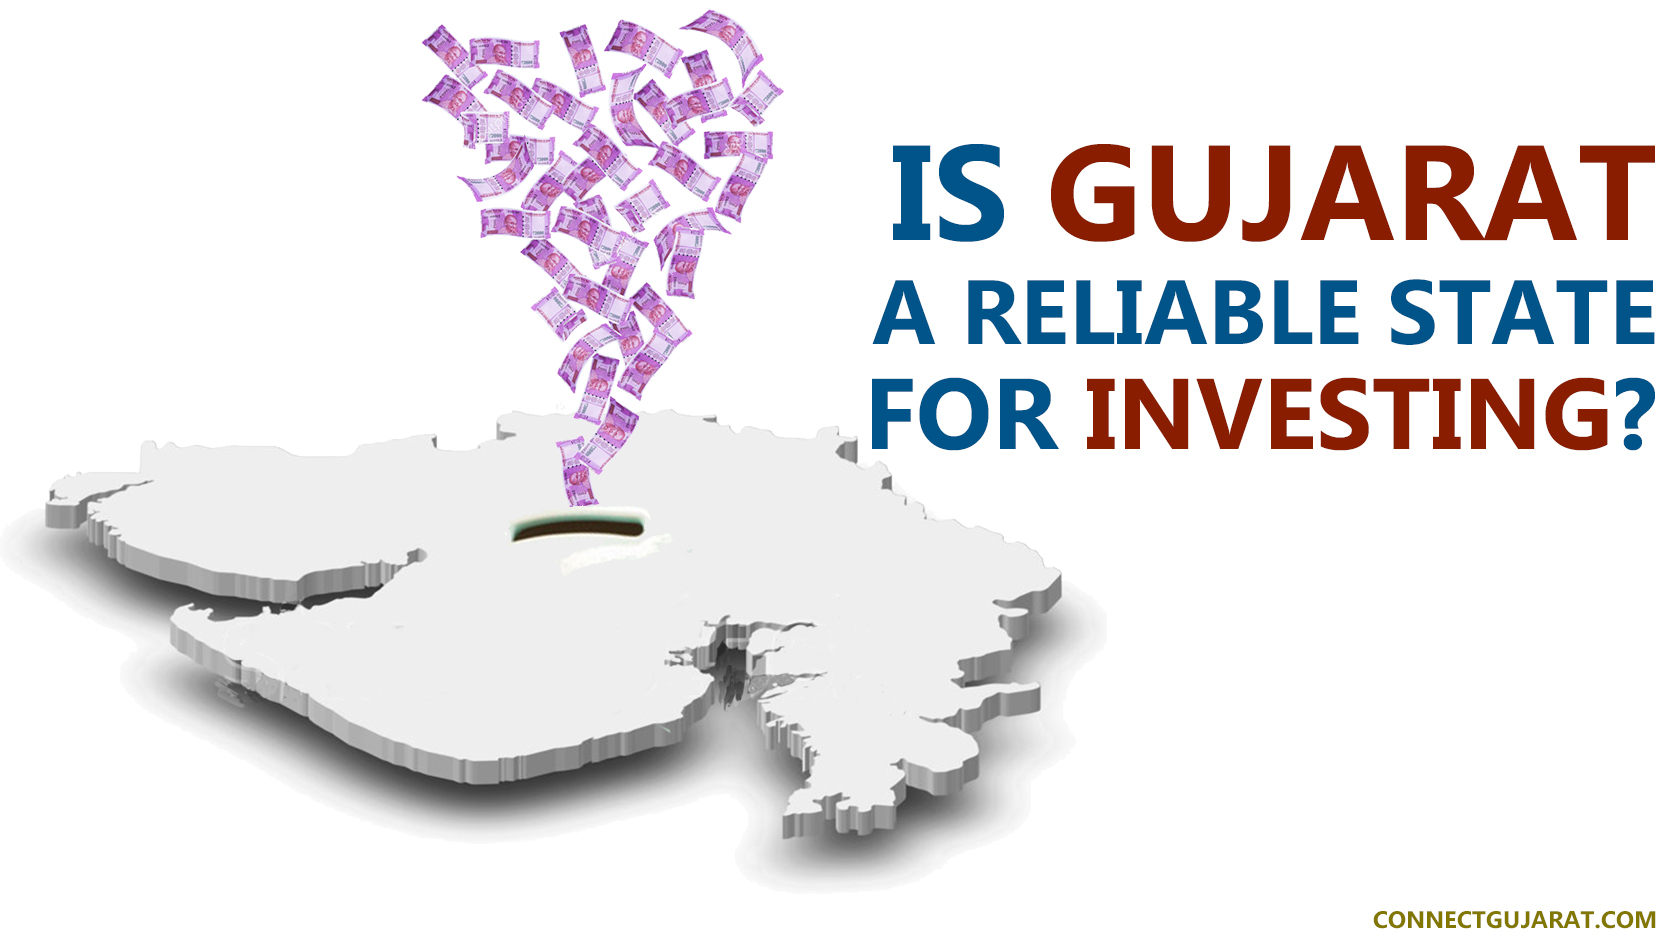 Is Gujarat a reliable state for investing?